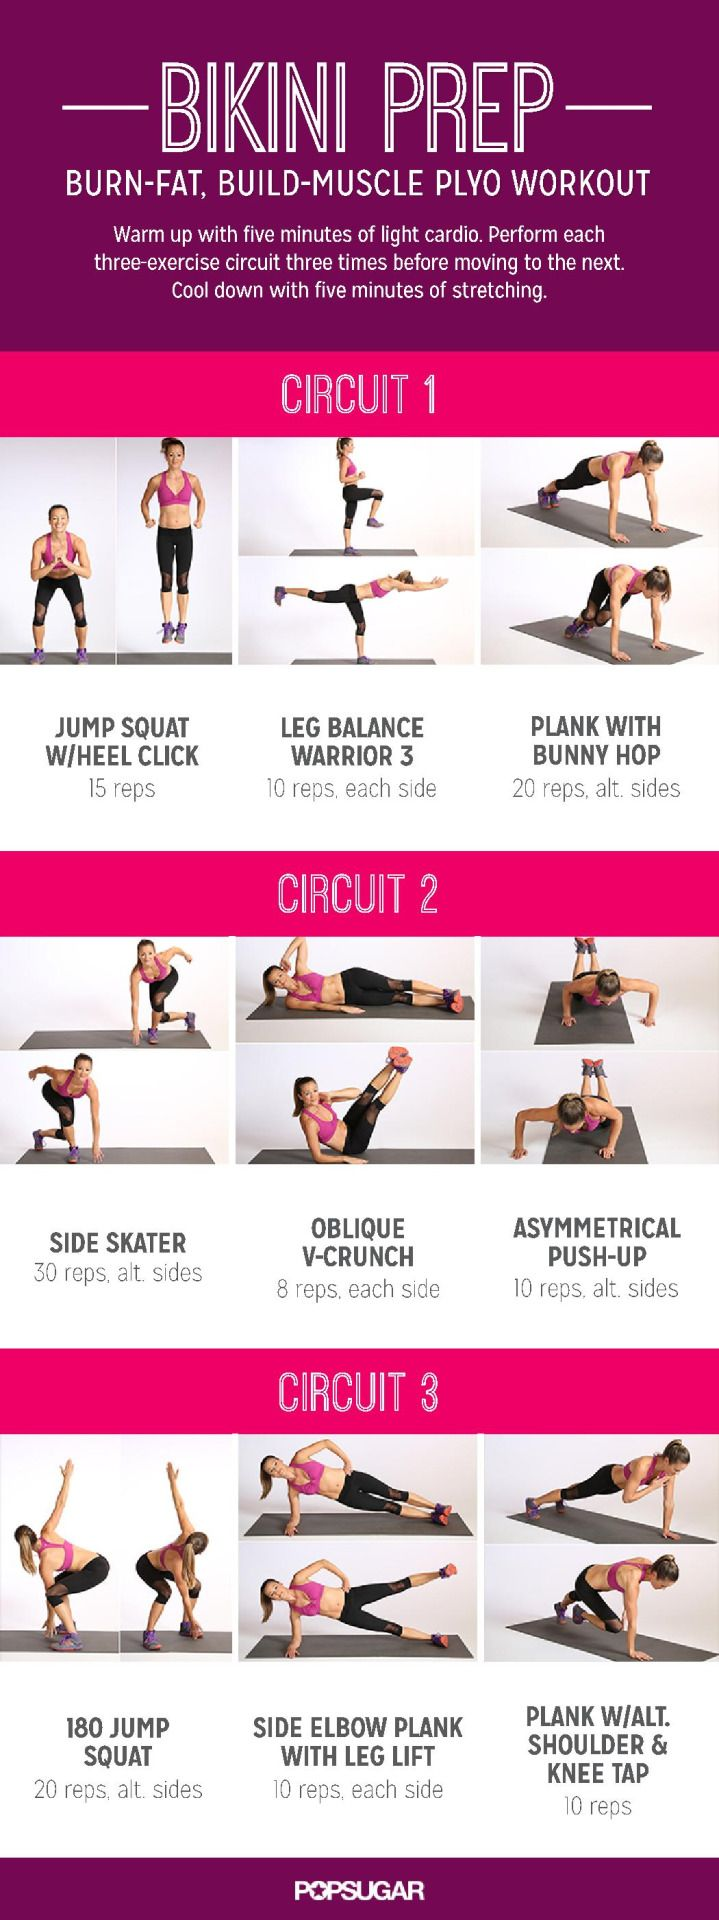 "sassyfitblog: ""Bikini Prep Plyo Workout Summer is less than 30 days away. If you've been slacking, it's time to kick it up a notch. There's no better fat burner & muscle builder than a Plyometric Workout. This one will help you get shredded. It's..."